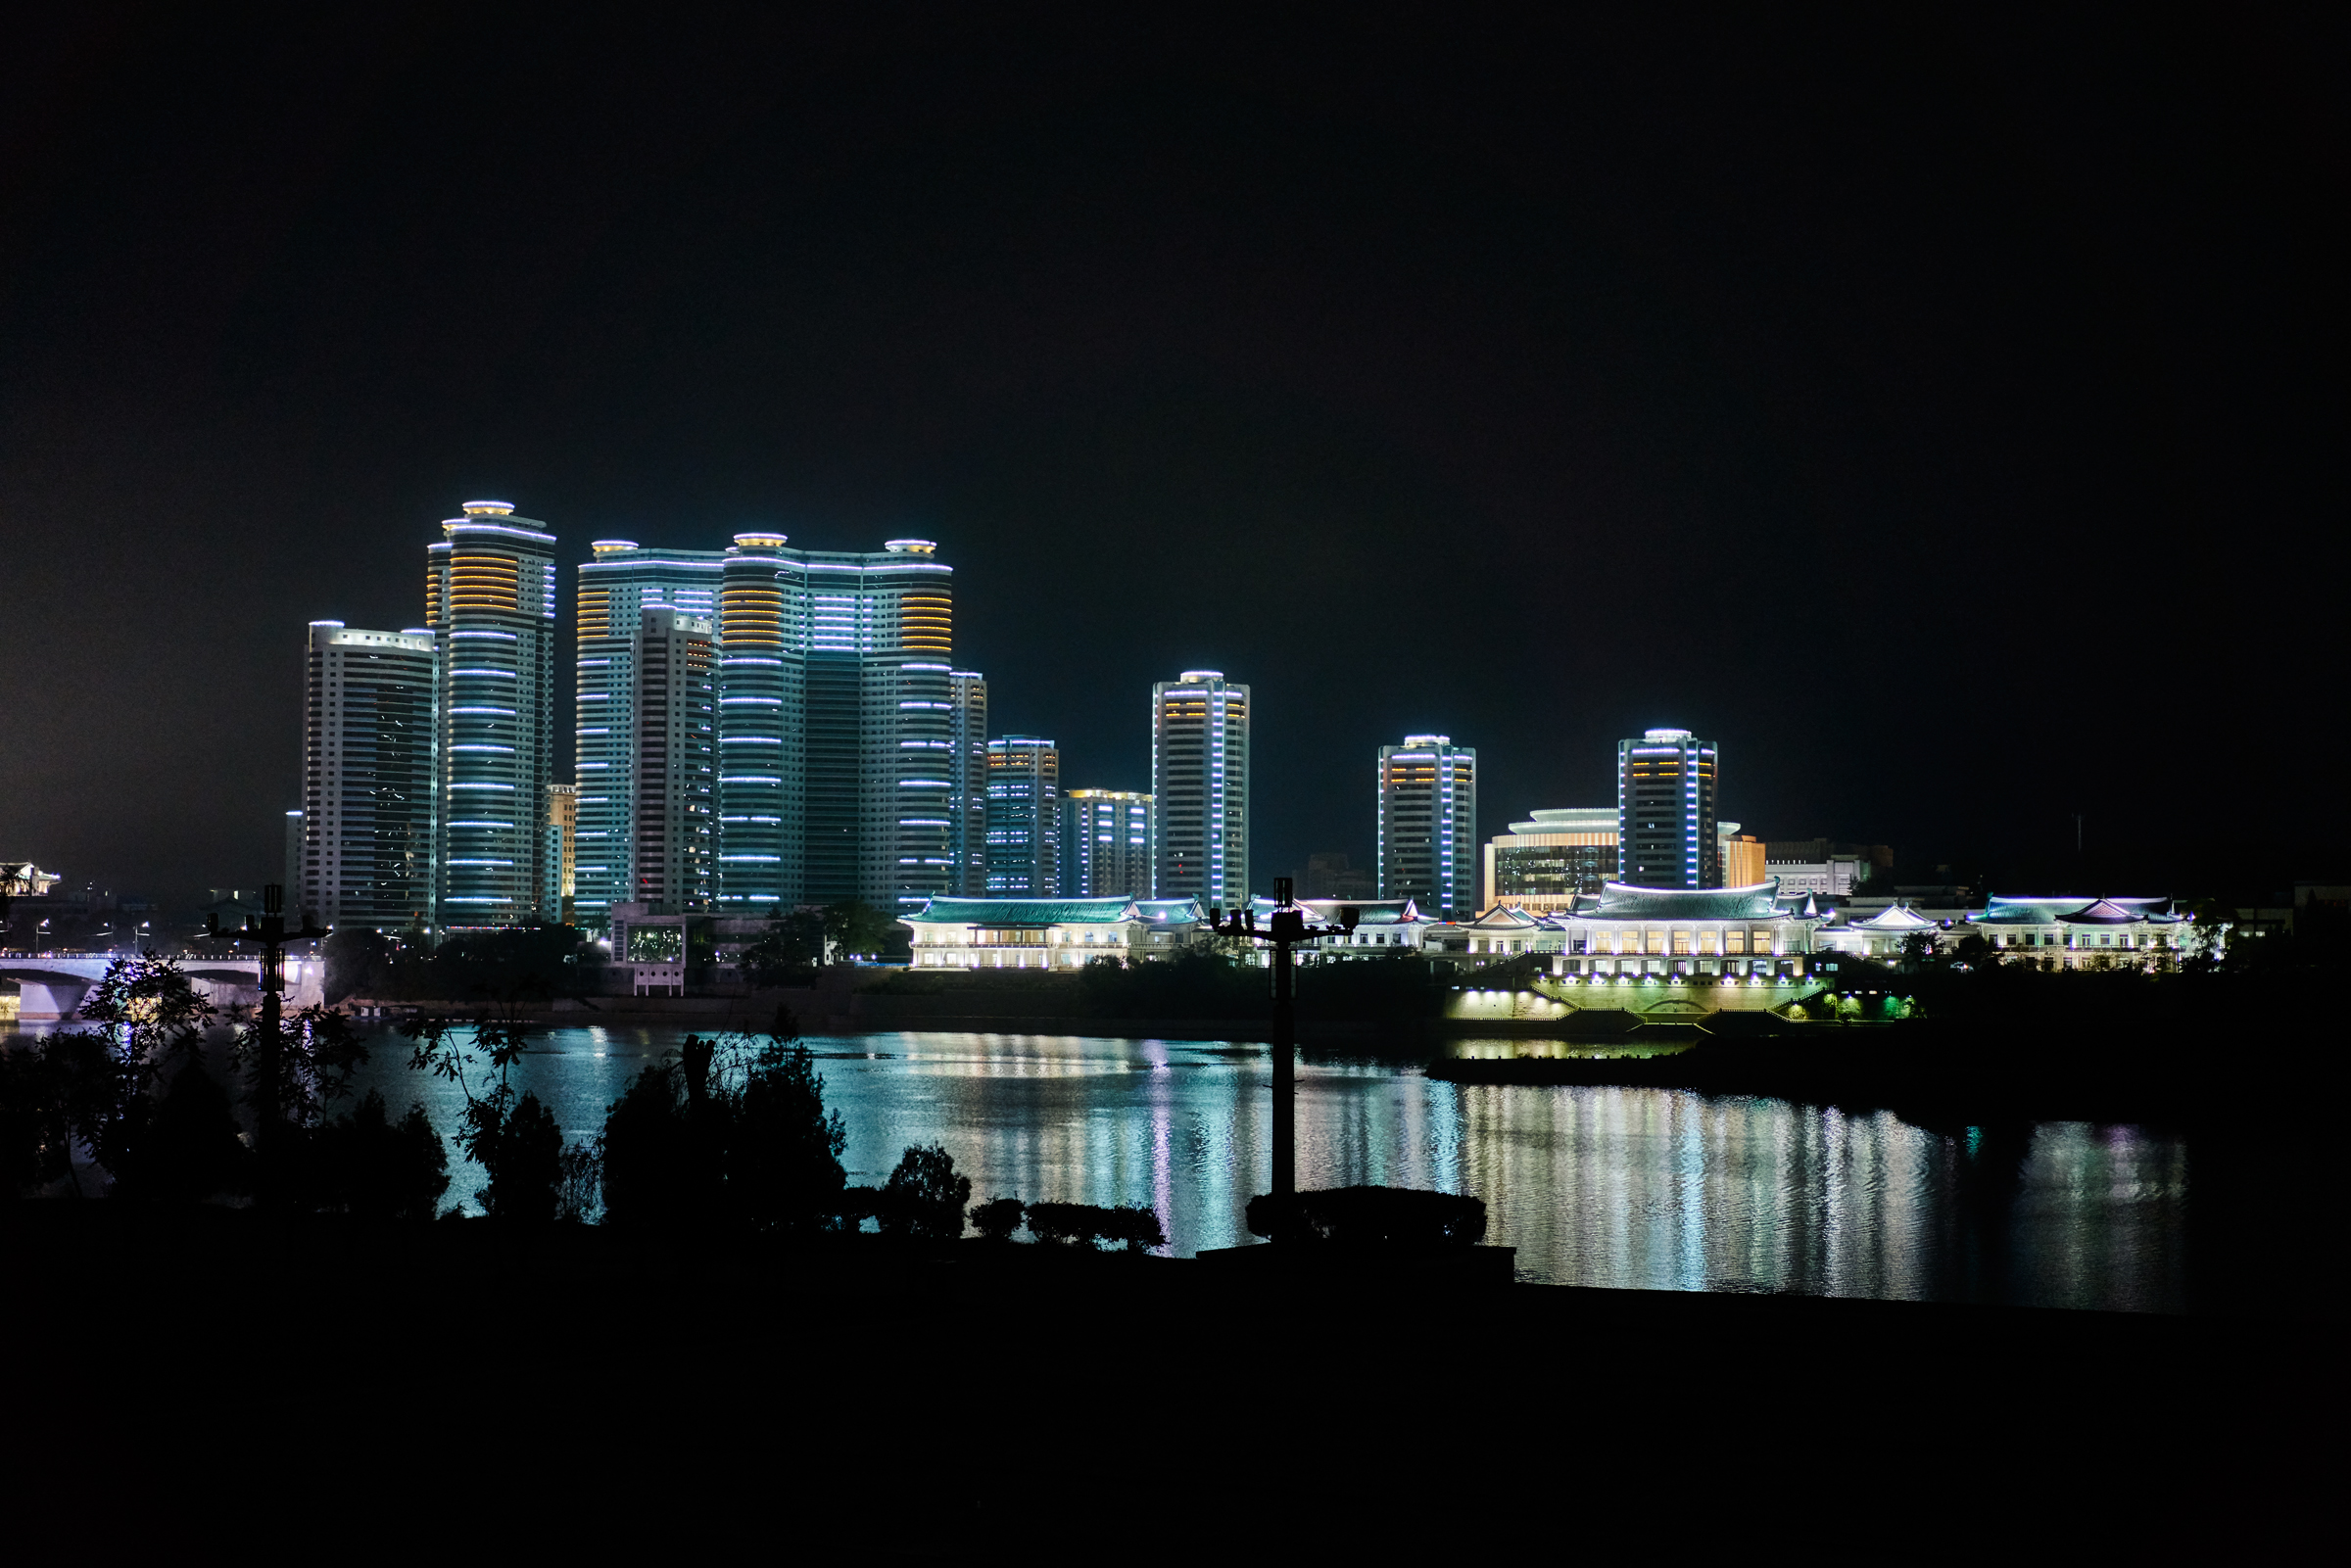 Many changes are happing in North Korea, Just a few years ago this city had no lights at night. Pyongyang, NK